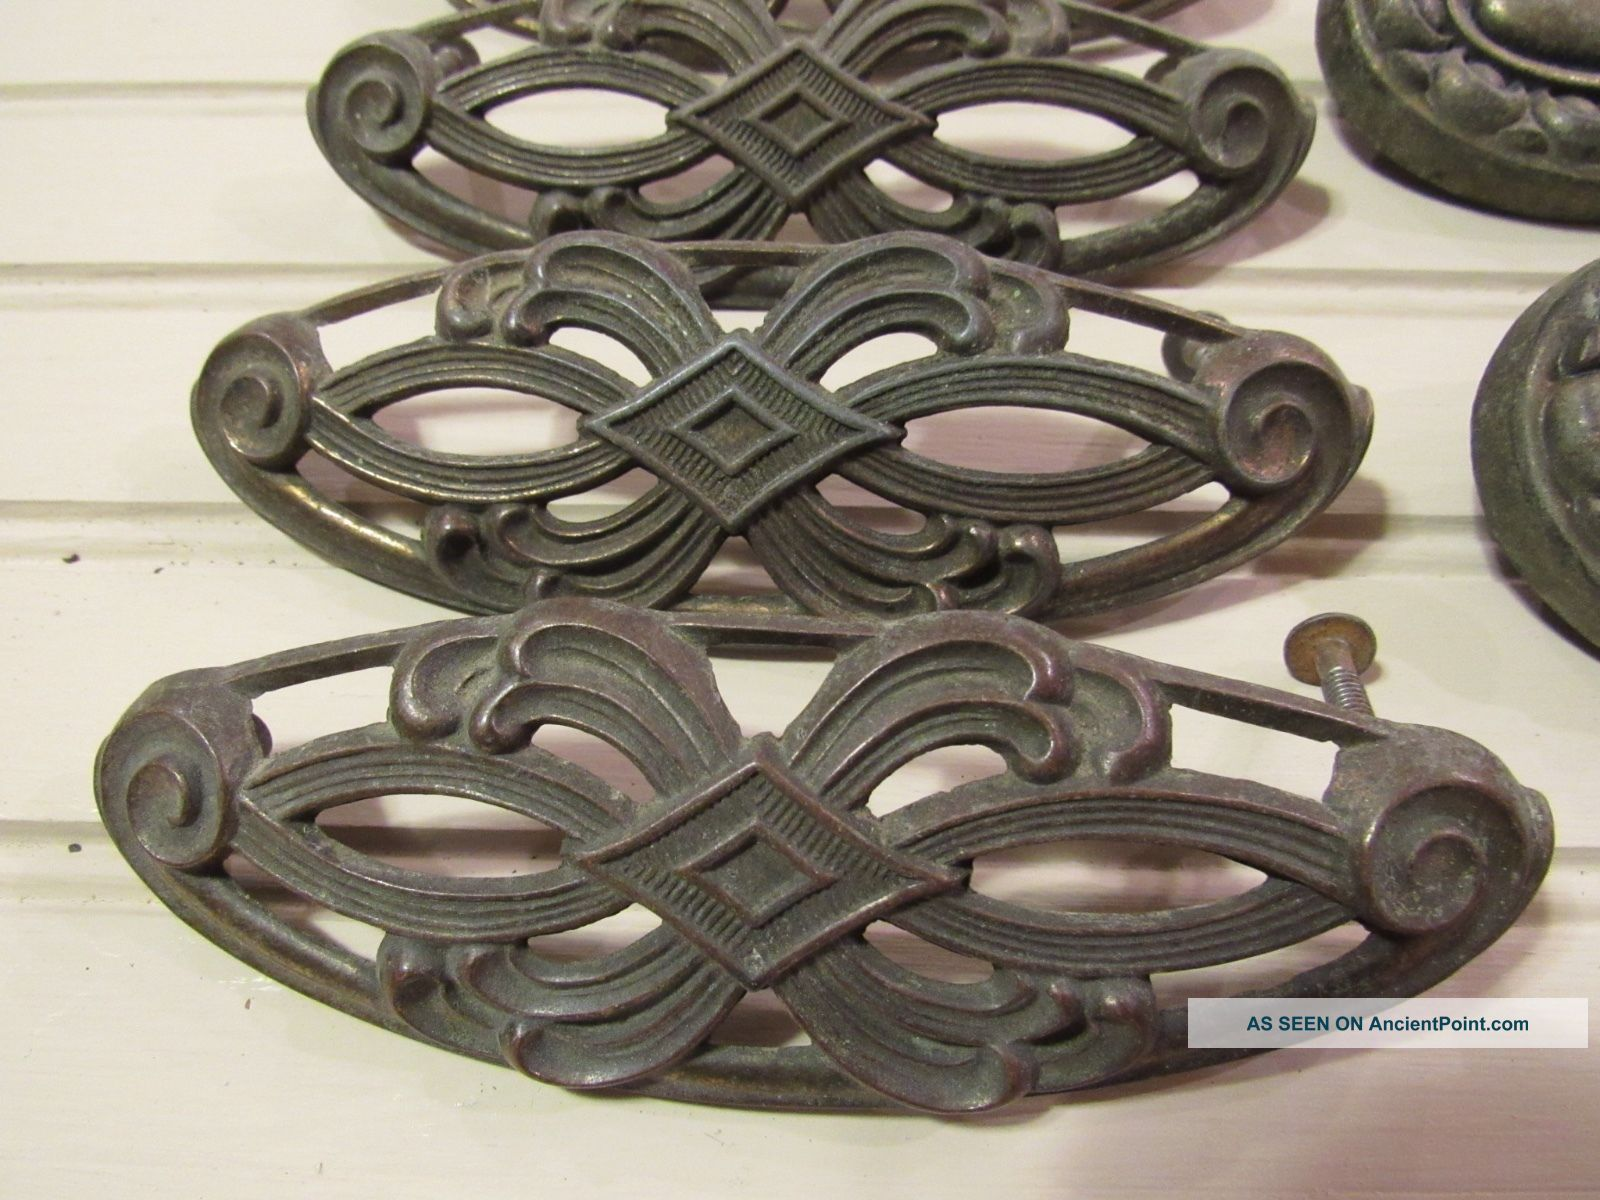 Antique Drawer Pulls Drawer Pulls photo